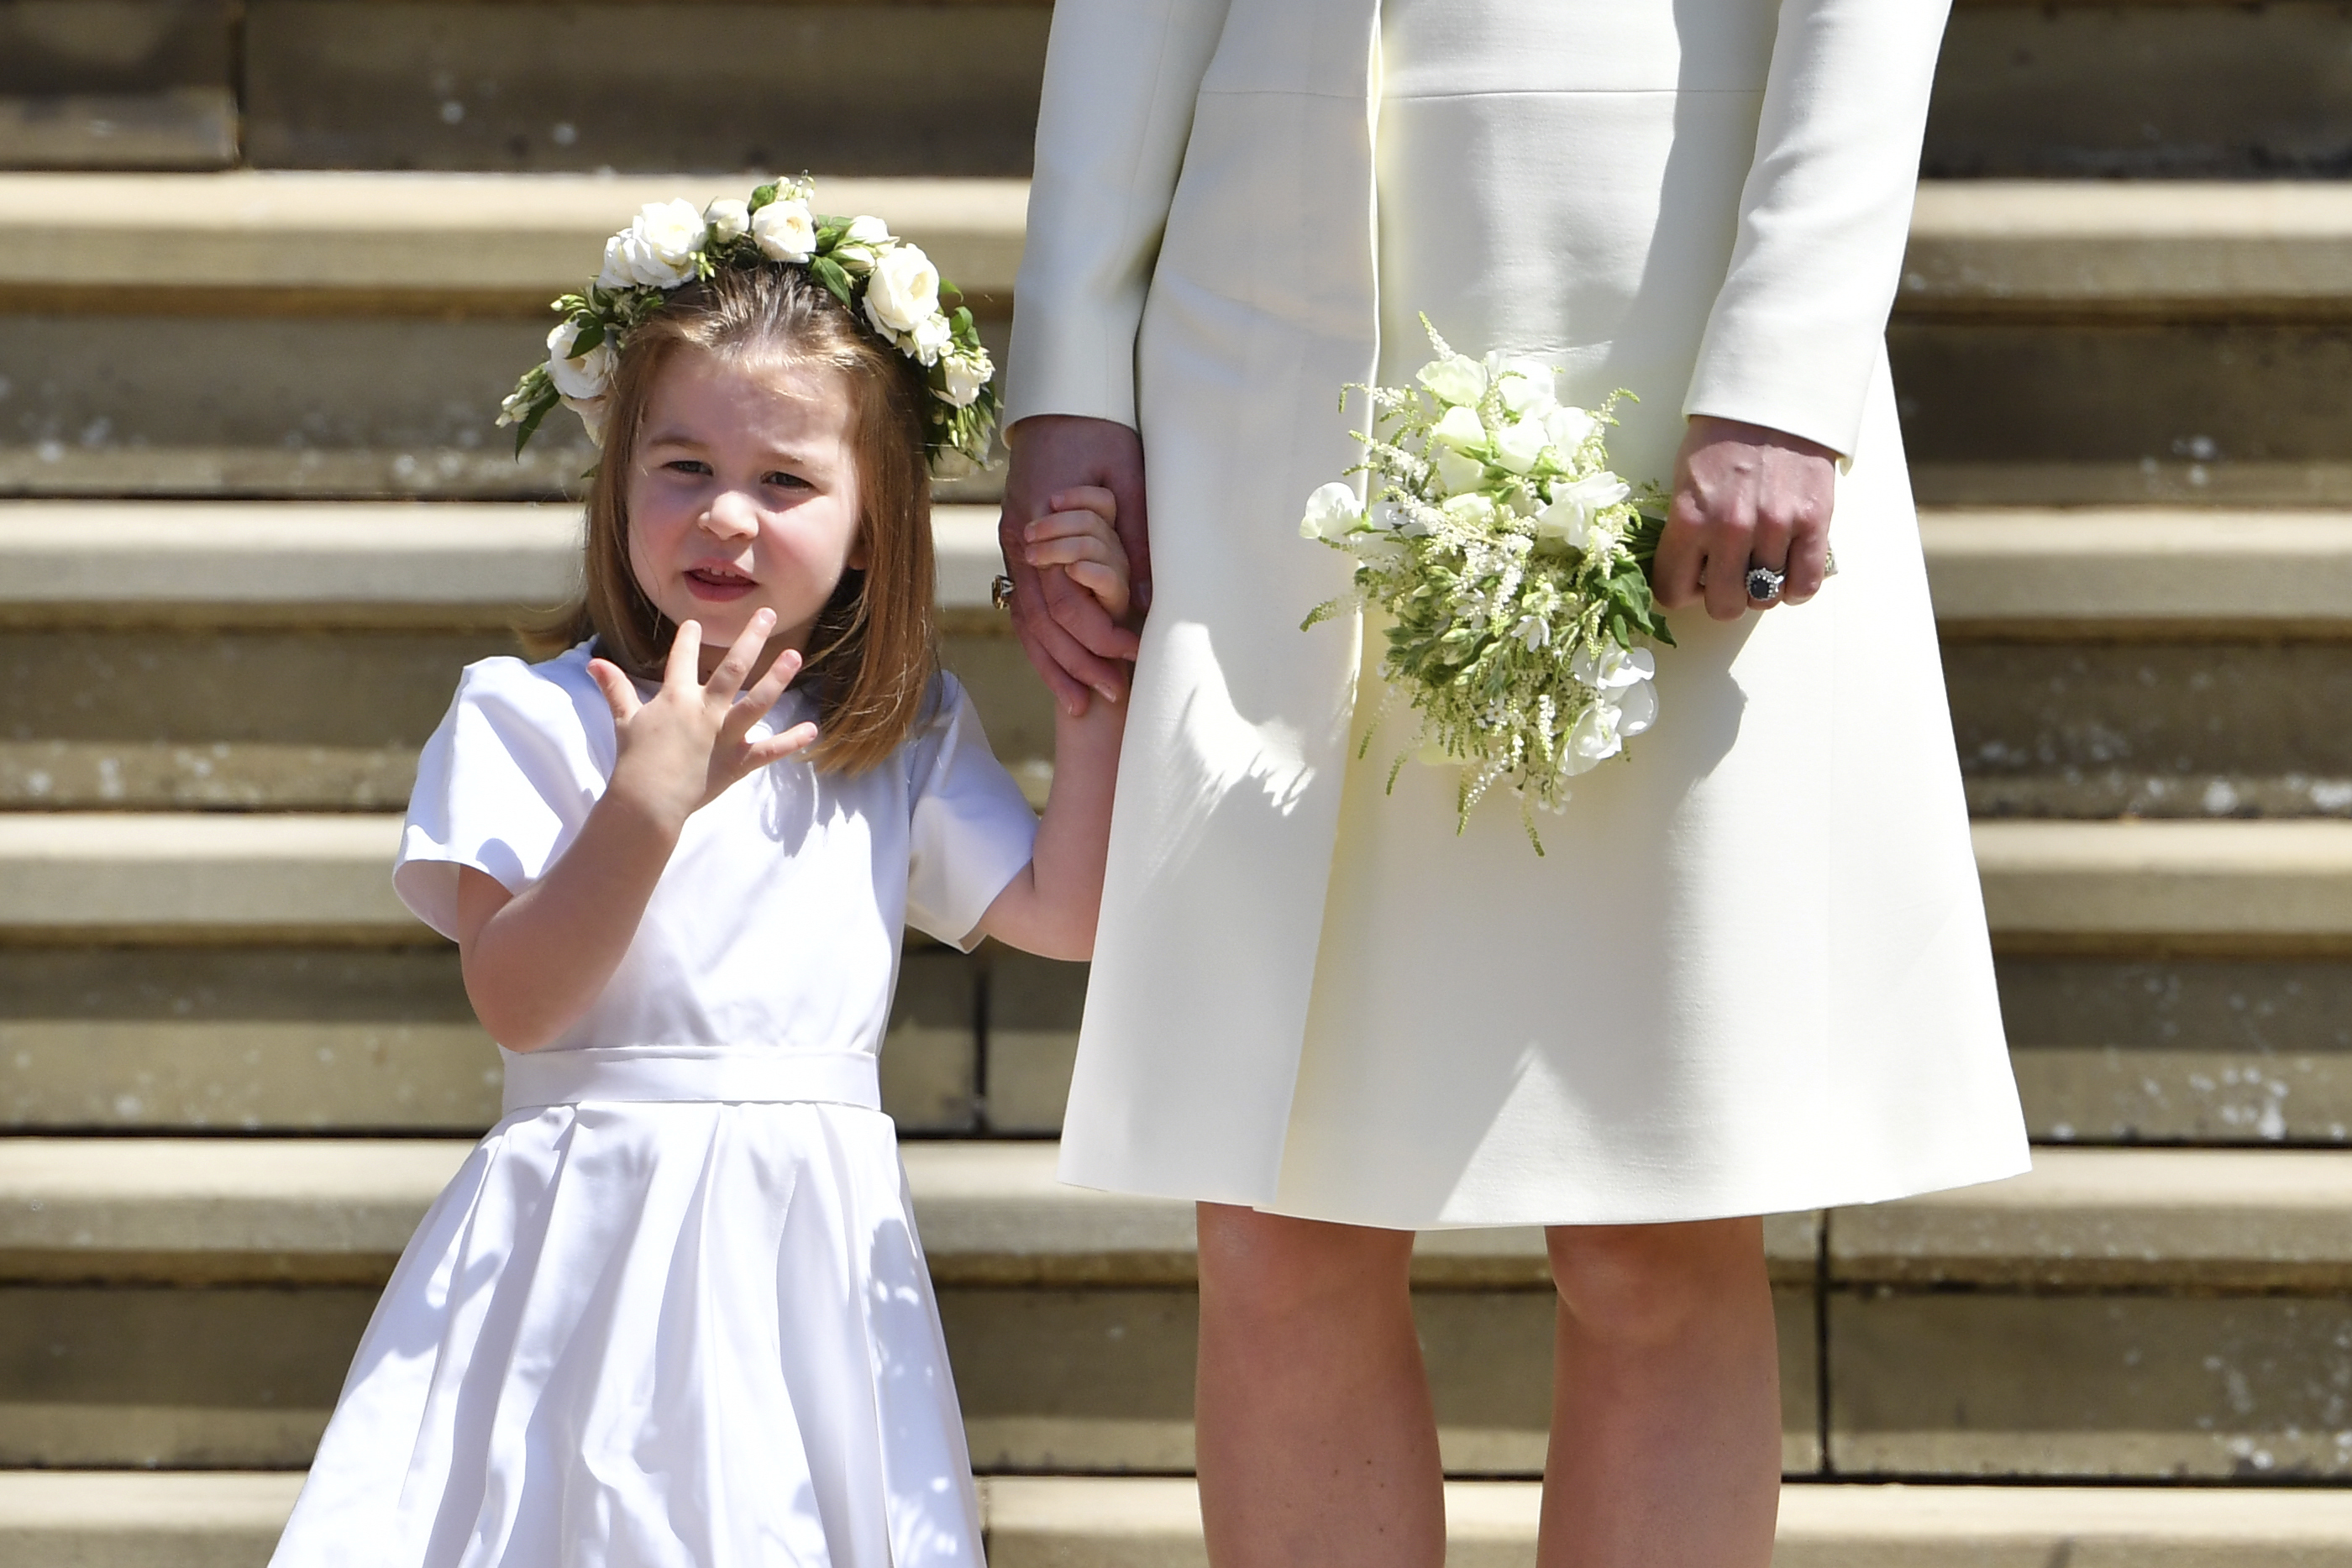 Britain's Princess Charlotte holds the hand of her mother Kate, Duchess of Cambridge after the wedding ceremony of Prince Harry and Meghan Markle at St. George's Chapel in Windsor Castle in Windsor, near London, England, Saturday, May 19, 2018. (Ben Stansall/pool photo via AP)